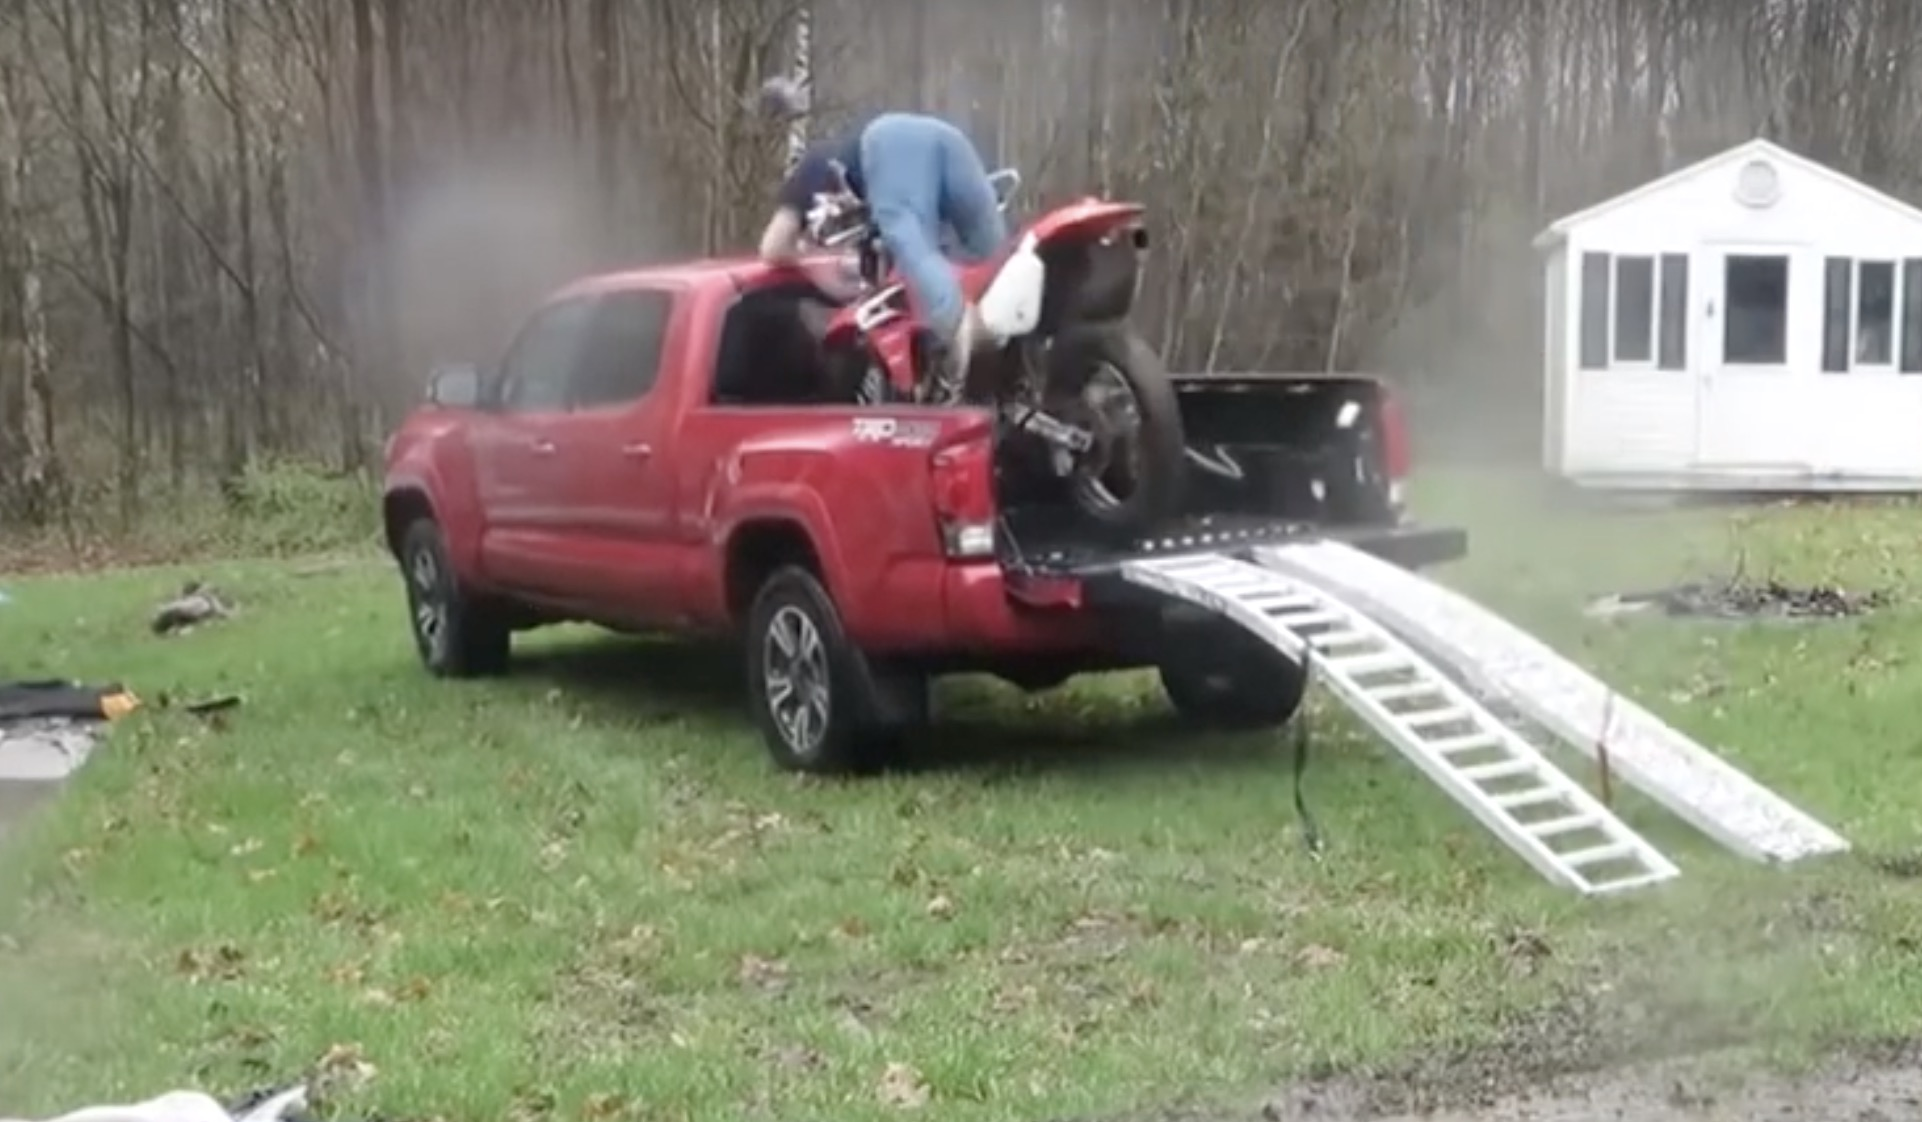 How Not To Load a Dirt-bike In a Truck